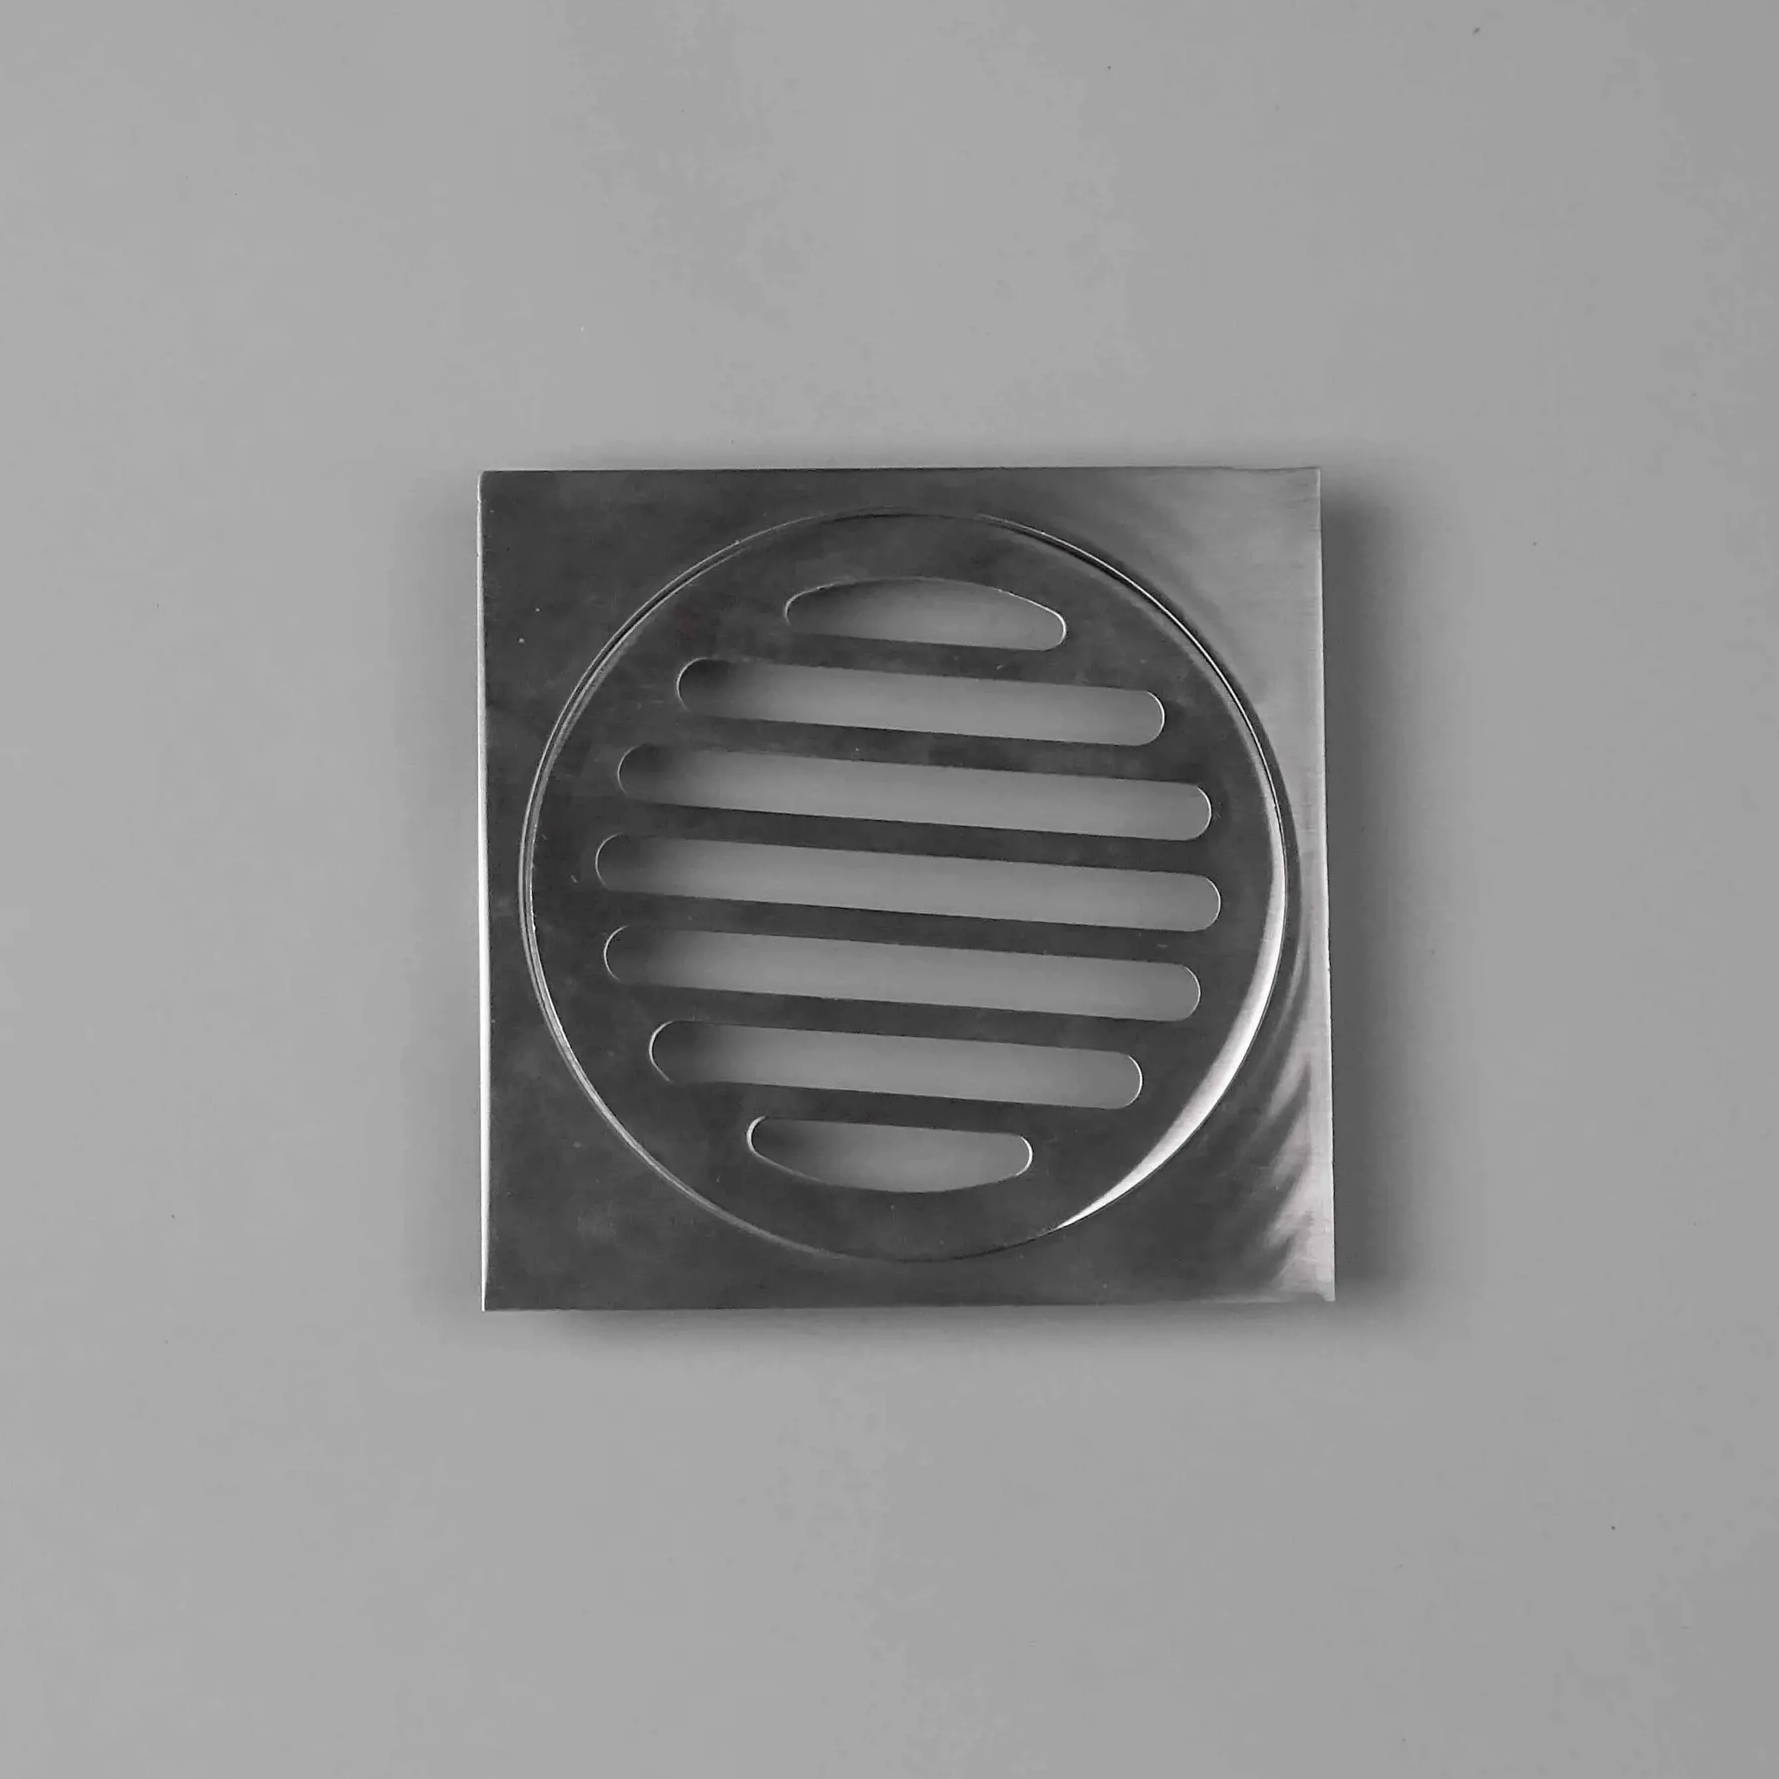 Square chrome wondercap shower drain grates